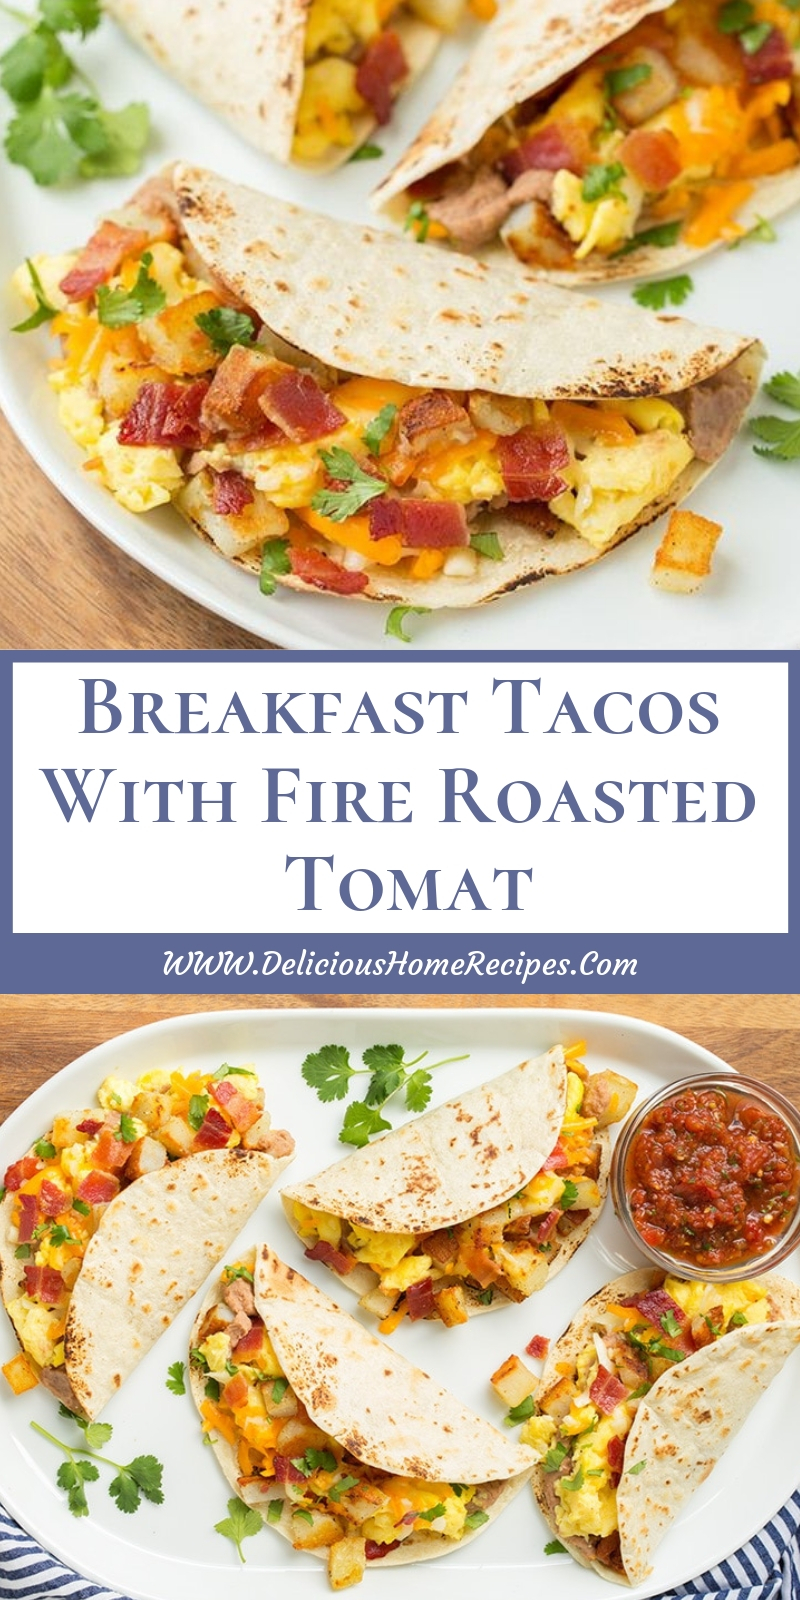 Breakfast Tacos With Fire Roasted Tomat